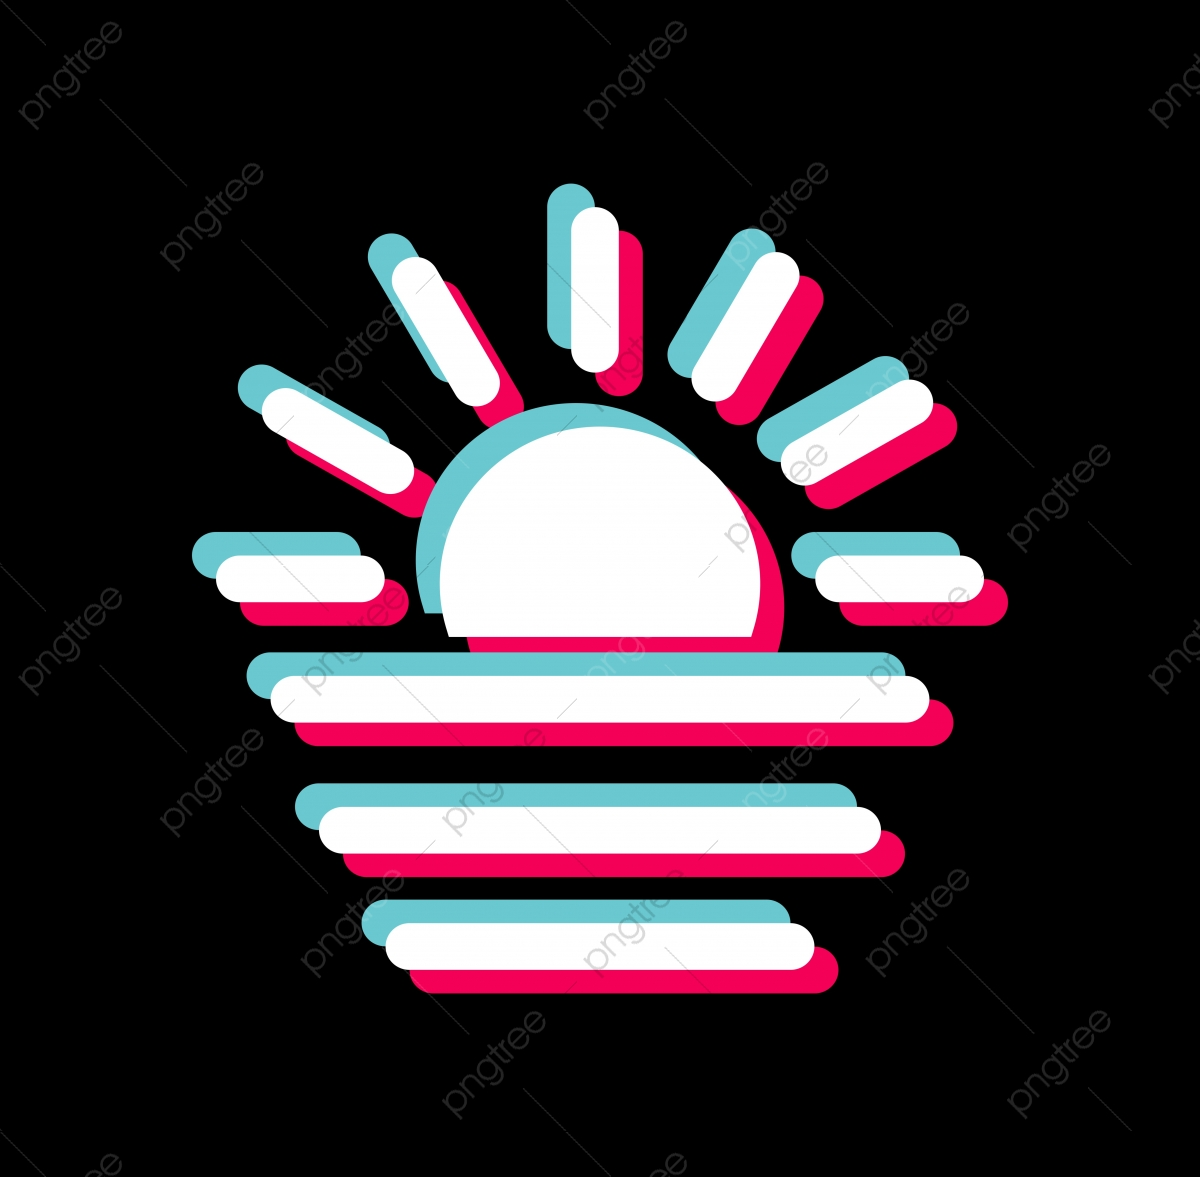 sunset icon design sunset icons sky sunset png and vector with transparent background for free download pngtree